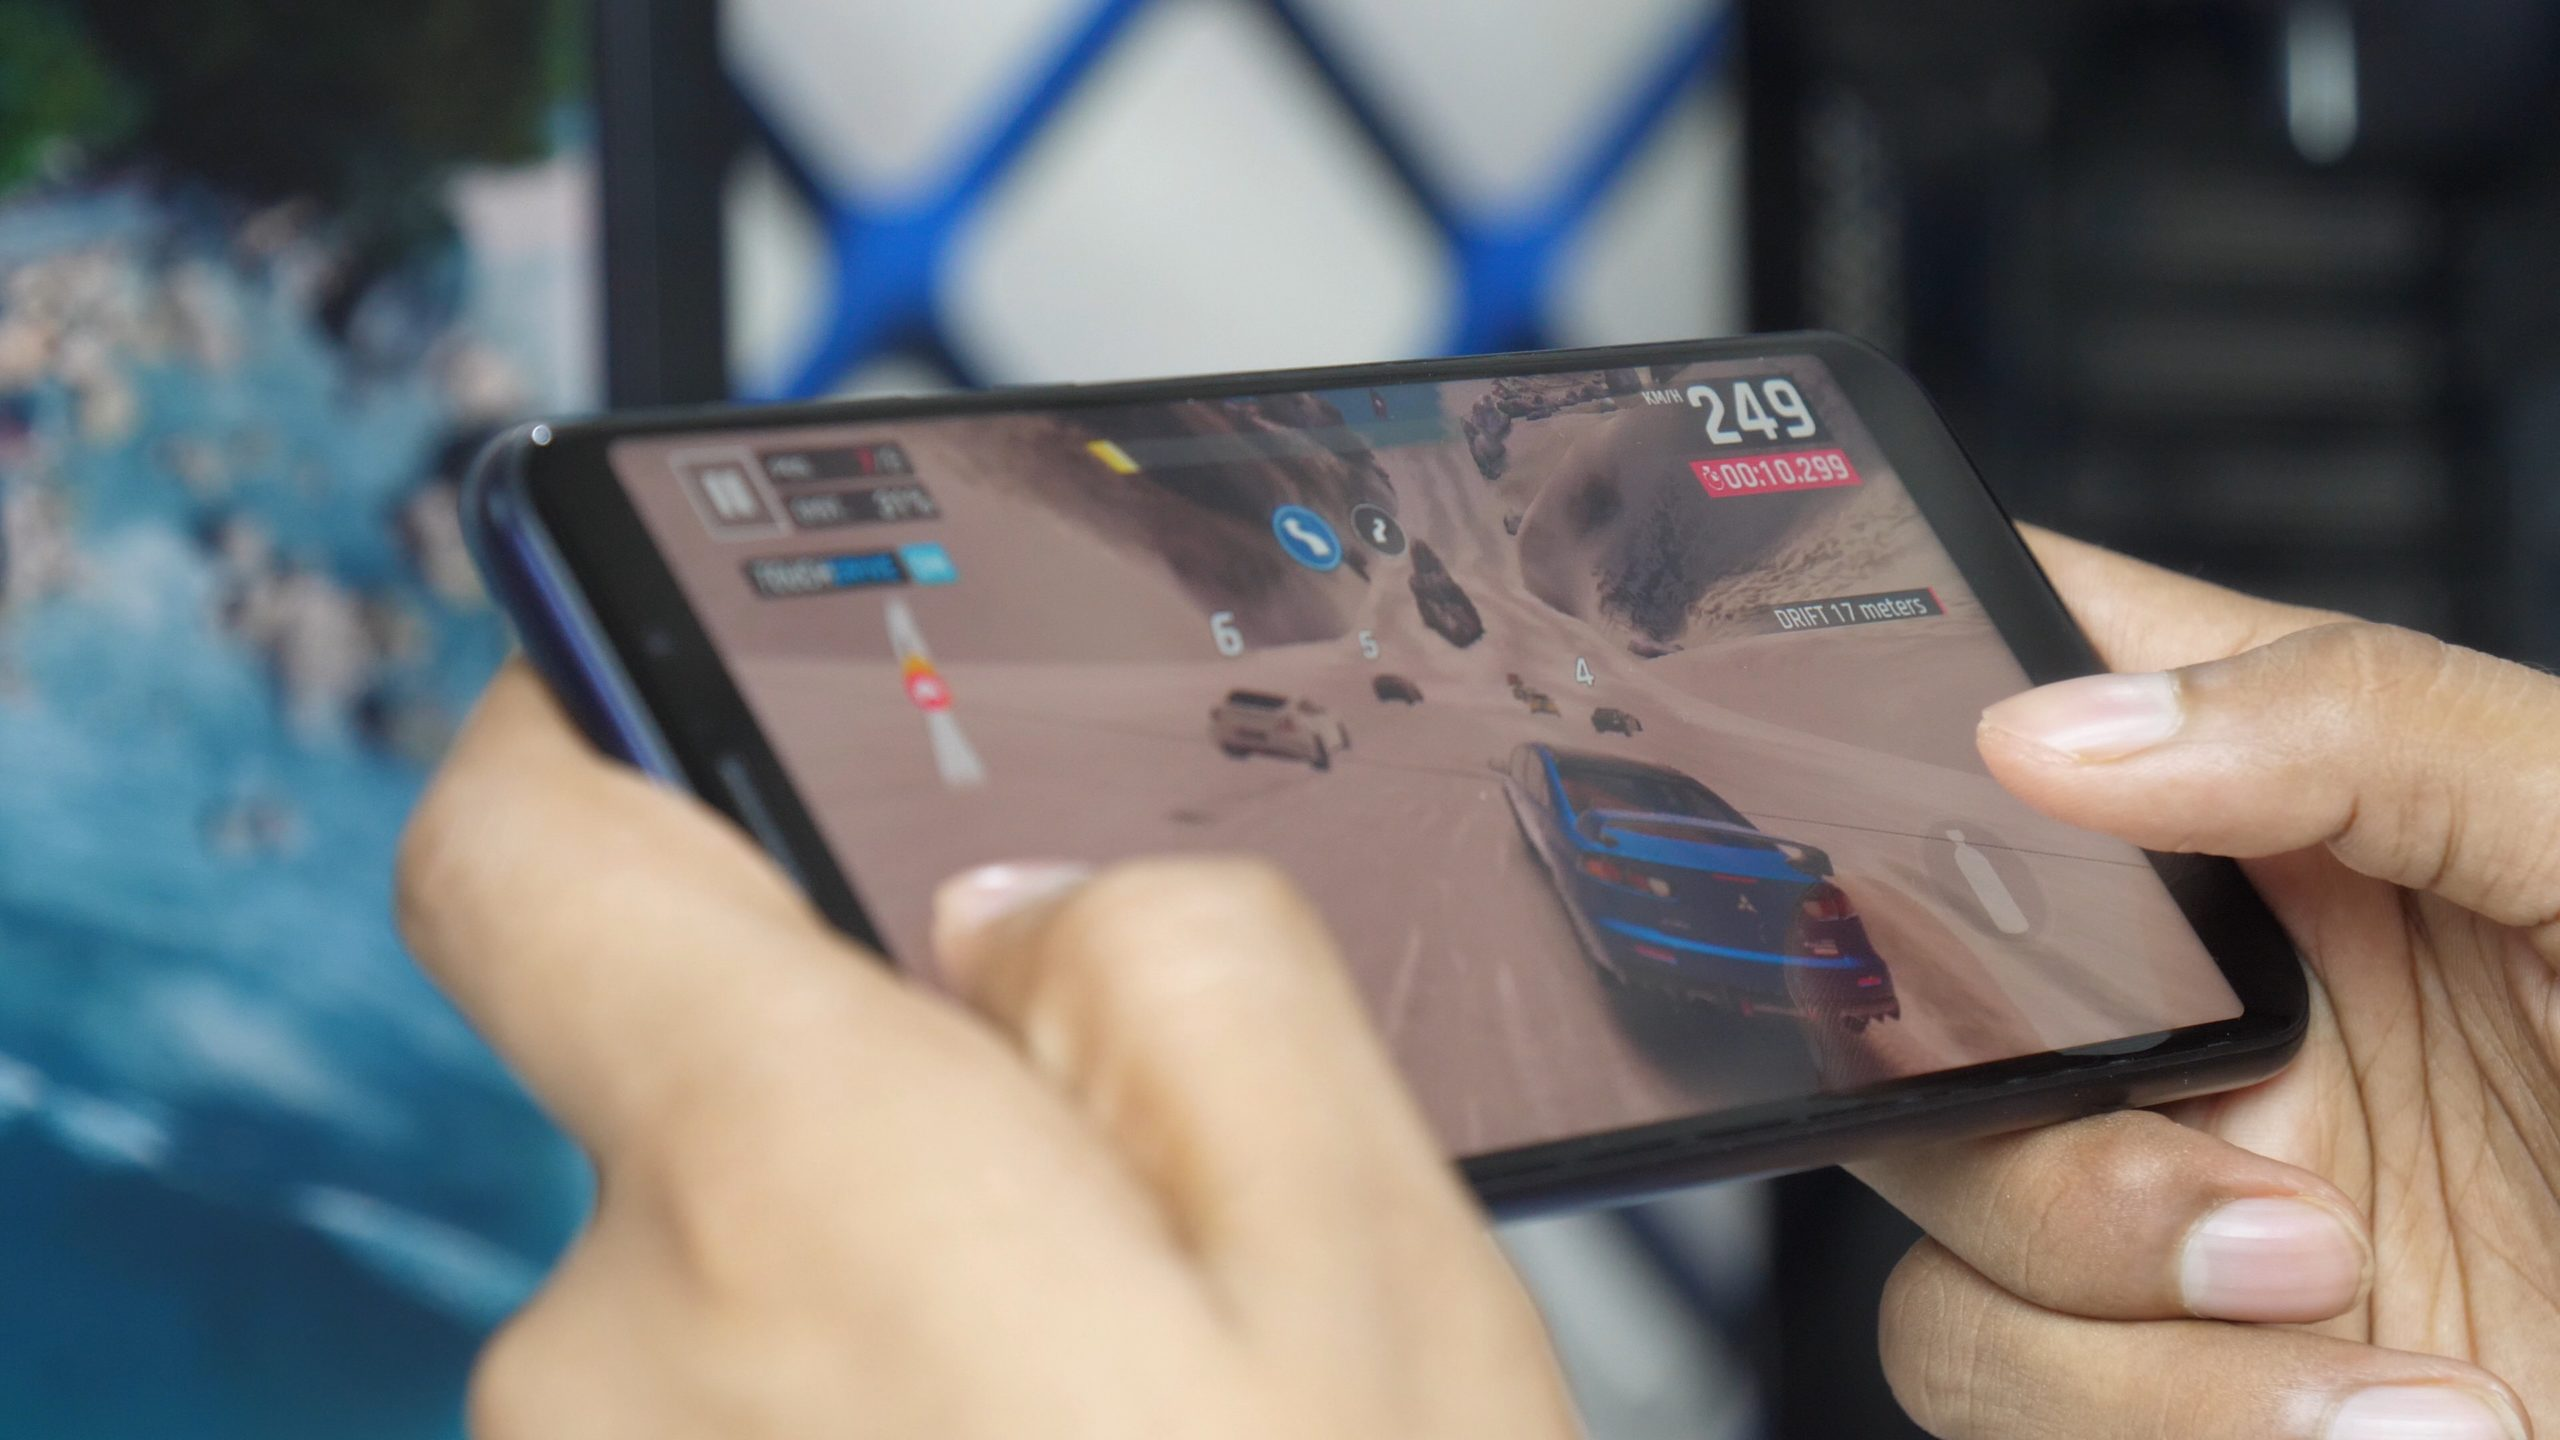 Most Anticipated Upcoming Android Games in 2020